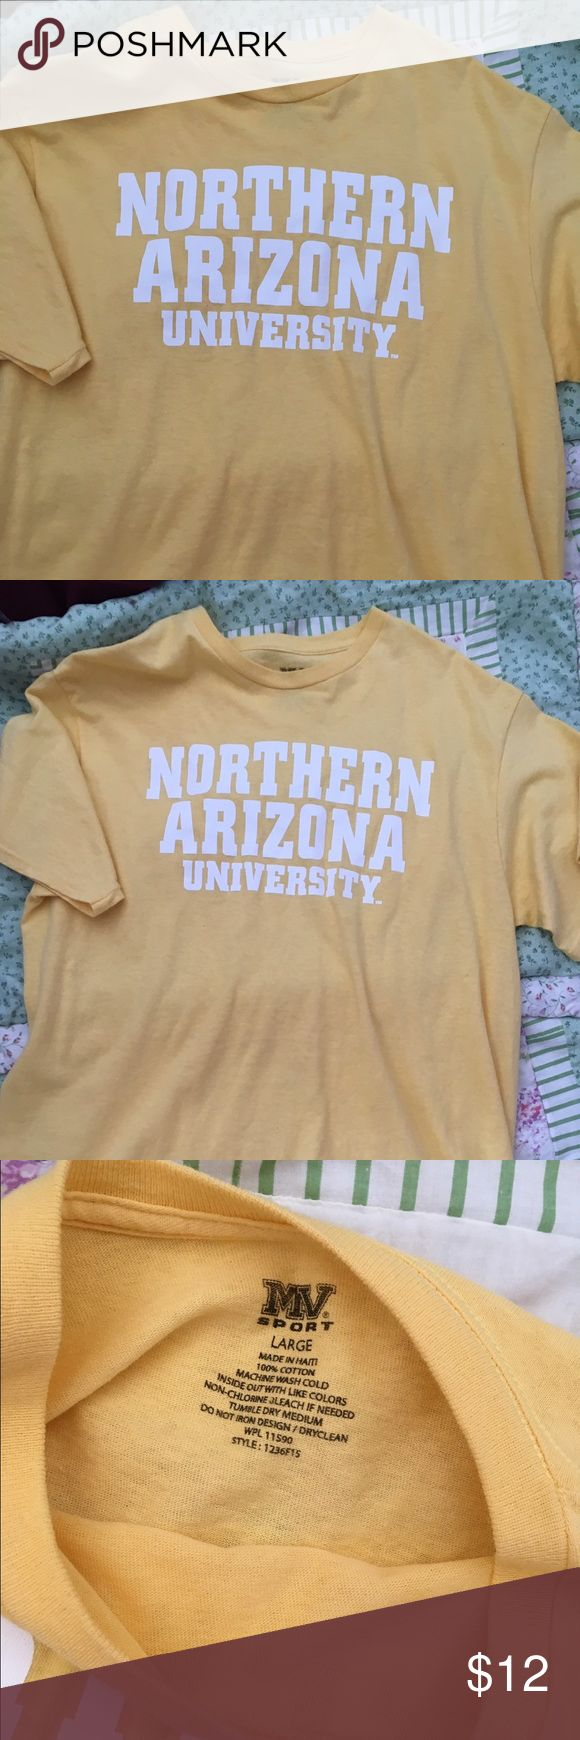 Northern Arizona University College T-shirt!! Super cute Northern Arizona University College t-shirt!! No defects! I only wore this once or twice!! :) Perfect for showing off your college pride properly!! :D Open to offers ;) Vintage Tops Tees - Short Sleeve